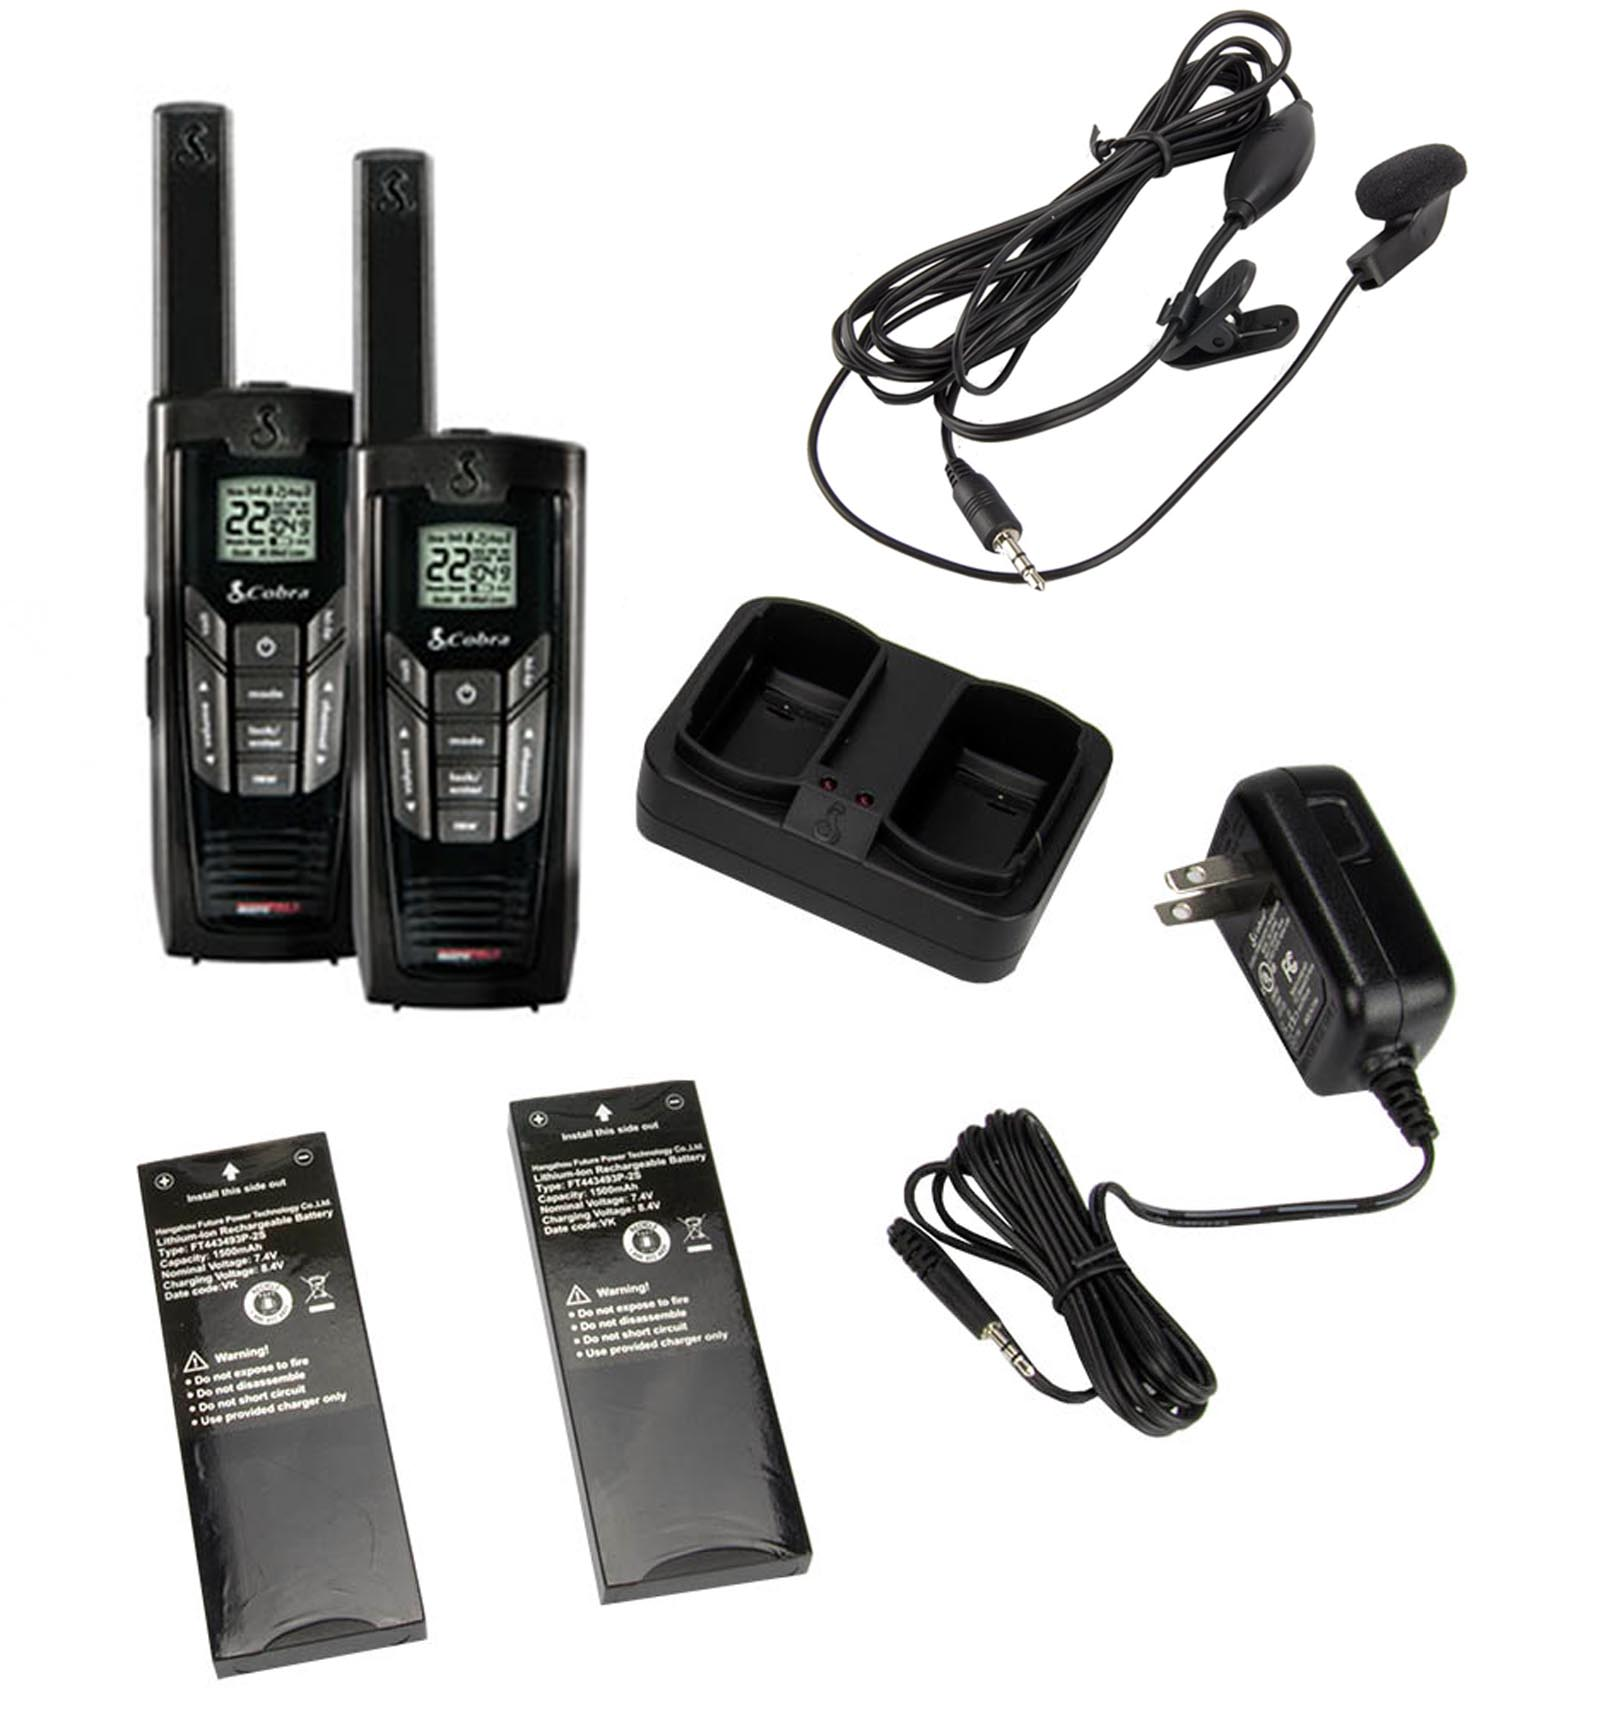 CXR925 + GA-EBM2�Cobra CXR925 22-Channel 35-Mile Two-Way Radio + Earbud & Mic